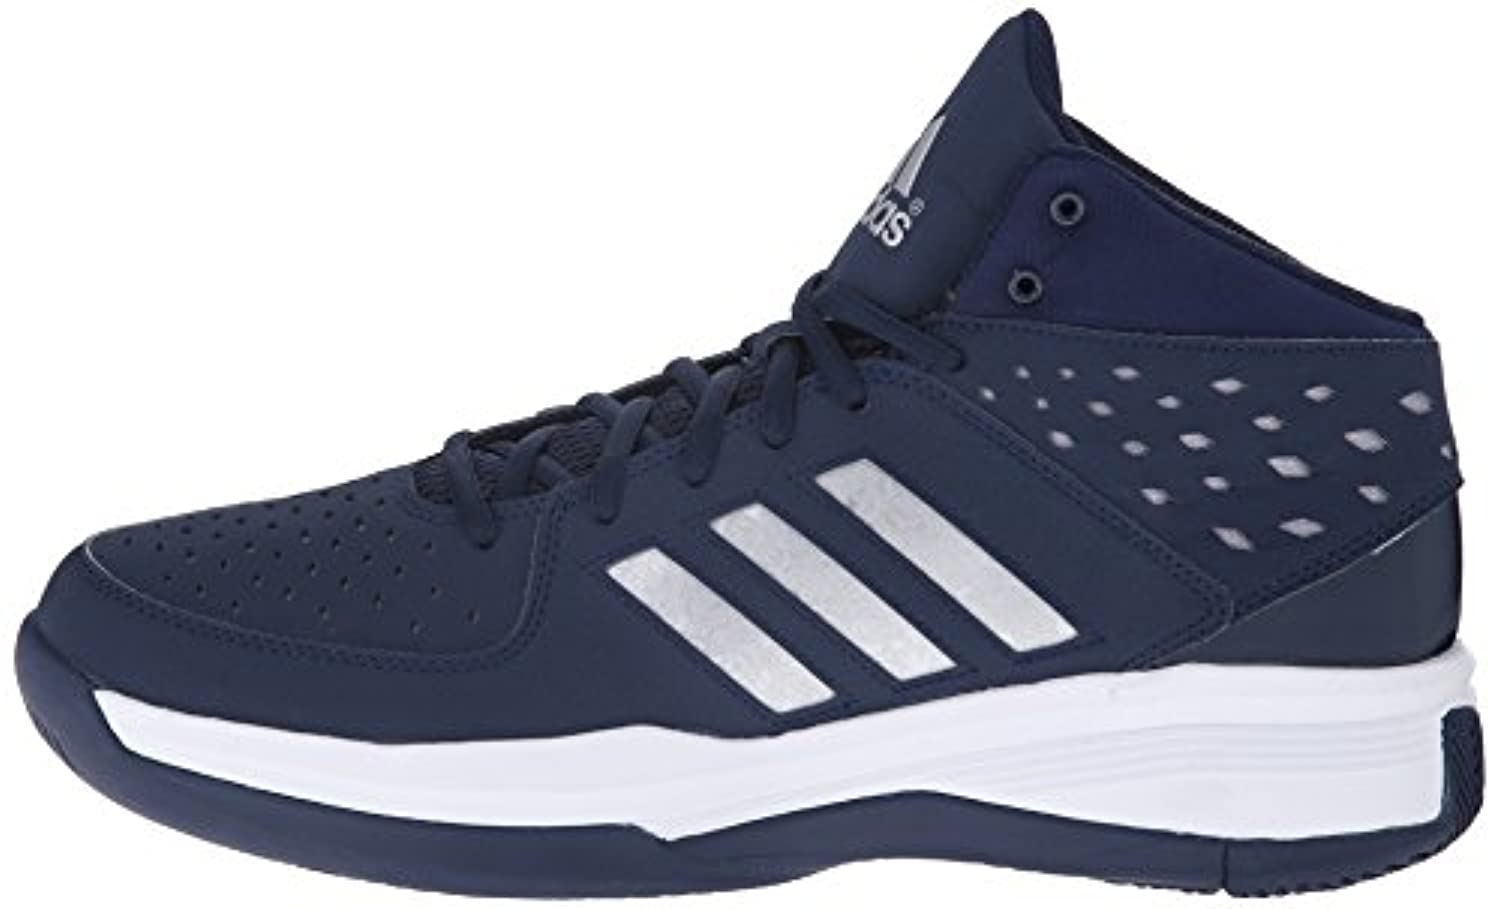 adidas basketball shoes navy blue